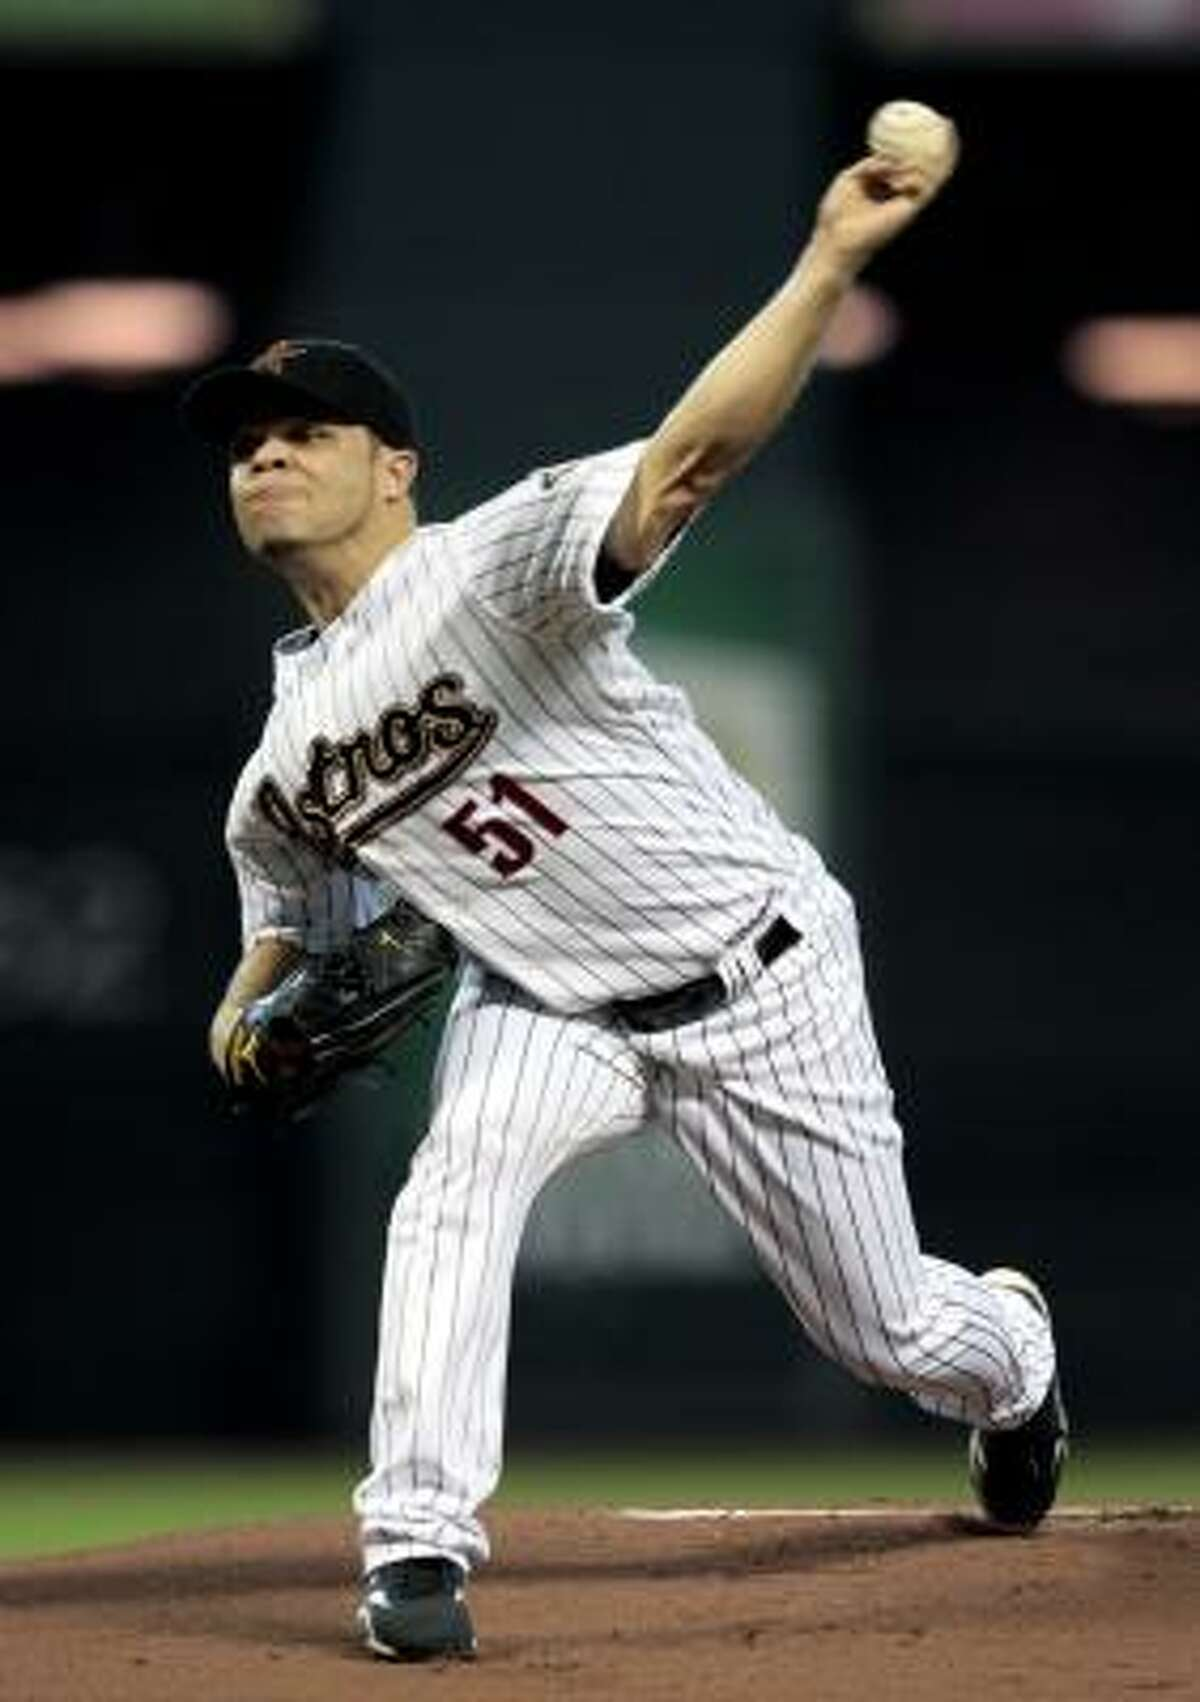 Wandy Rodriguez threw eight scoreless innings and got the win against the San Diego Padres.